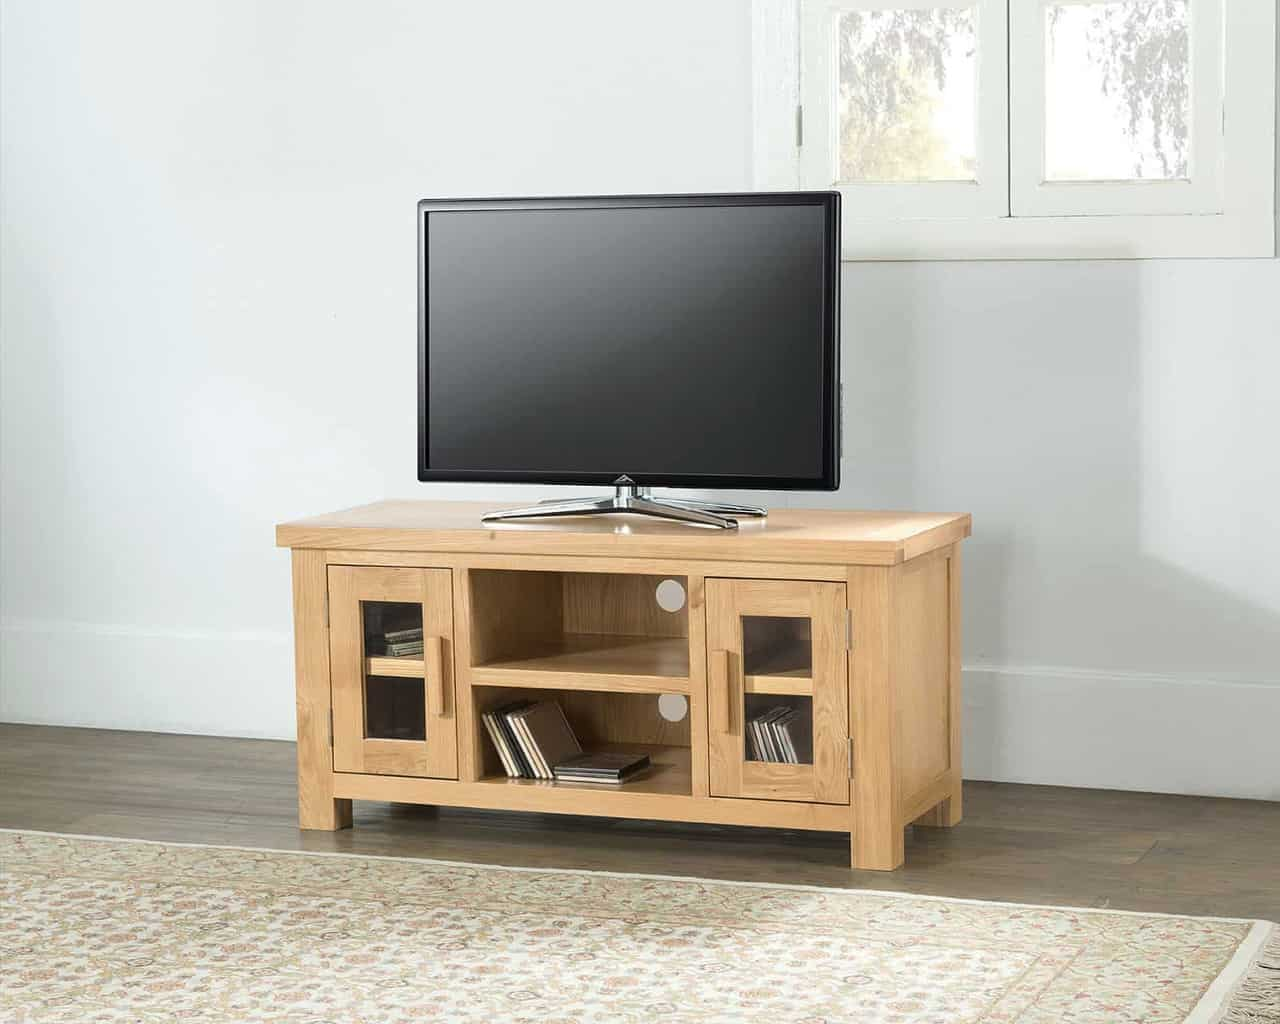 Valencia Solid Chunky Oak Large Widescreen Tv Lcd Plasma Cabinet Stand Unit Msl Furniture